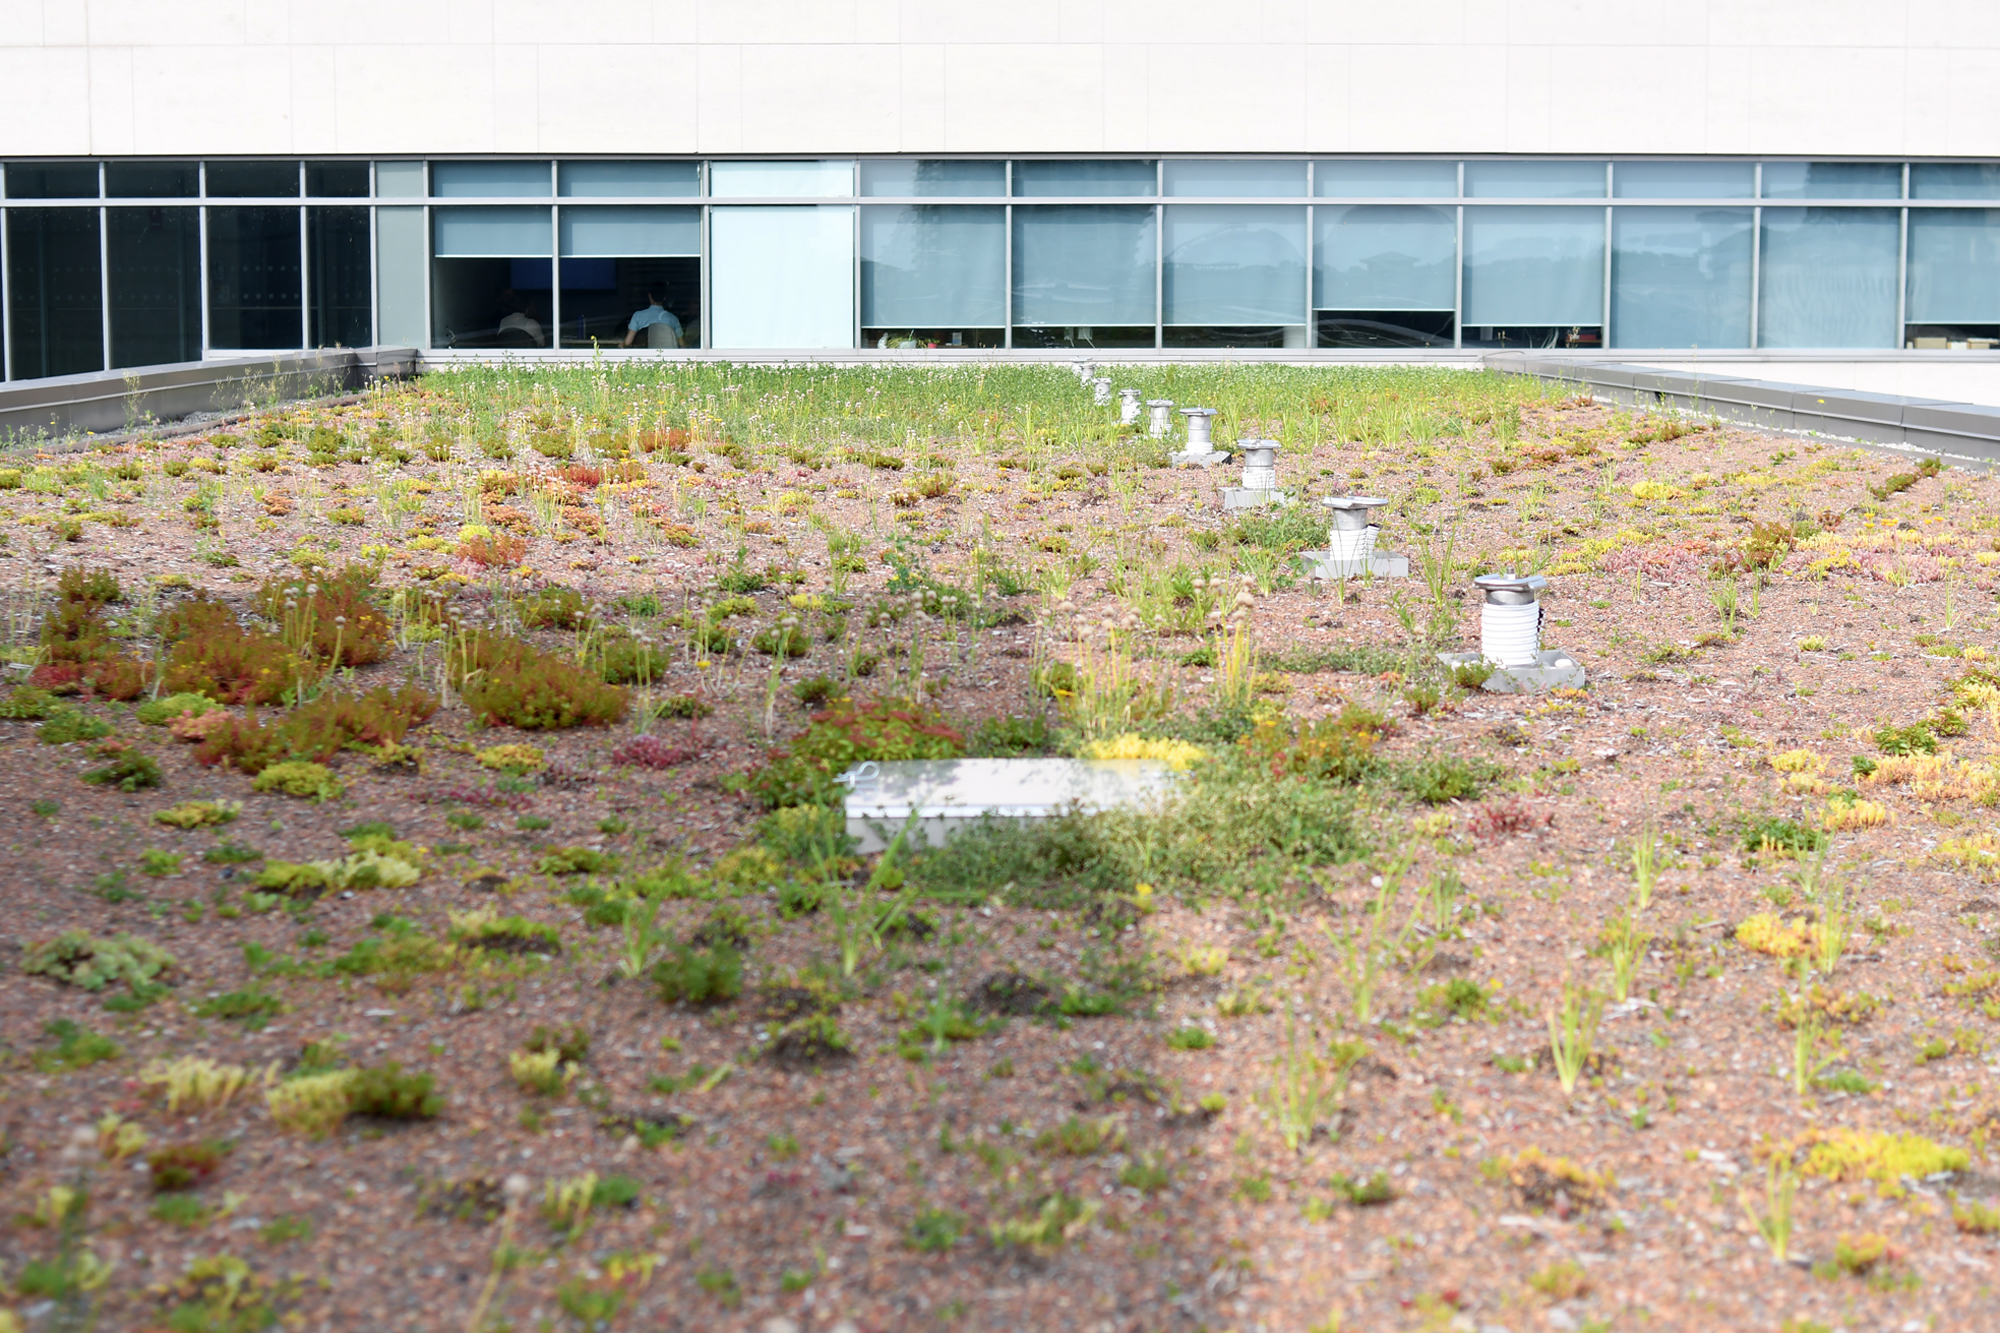 City's living roof gets revamped for low maintenence (6 Photos)